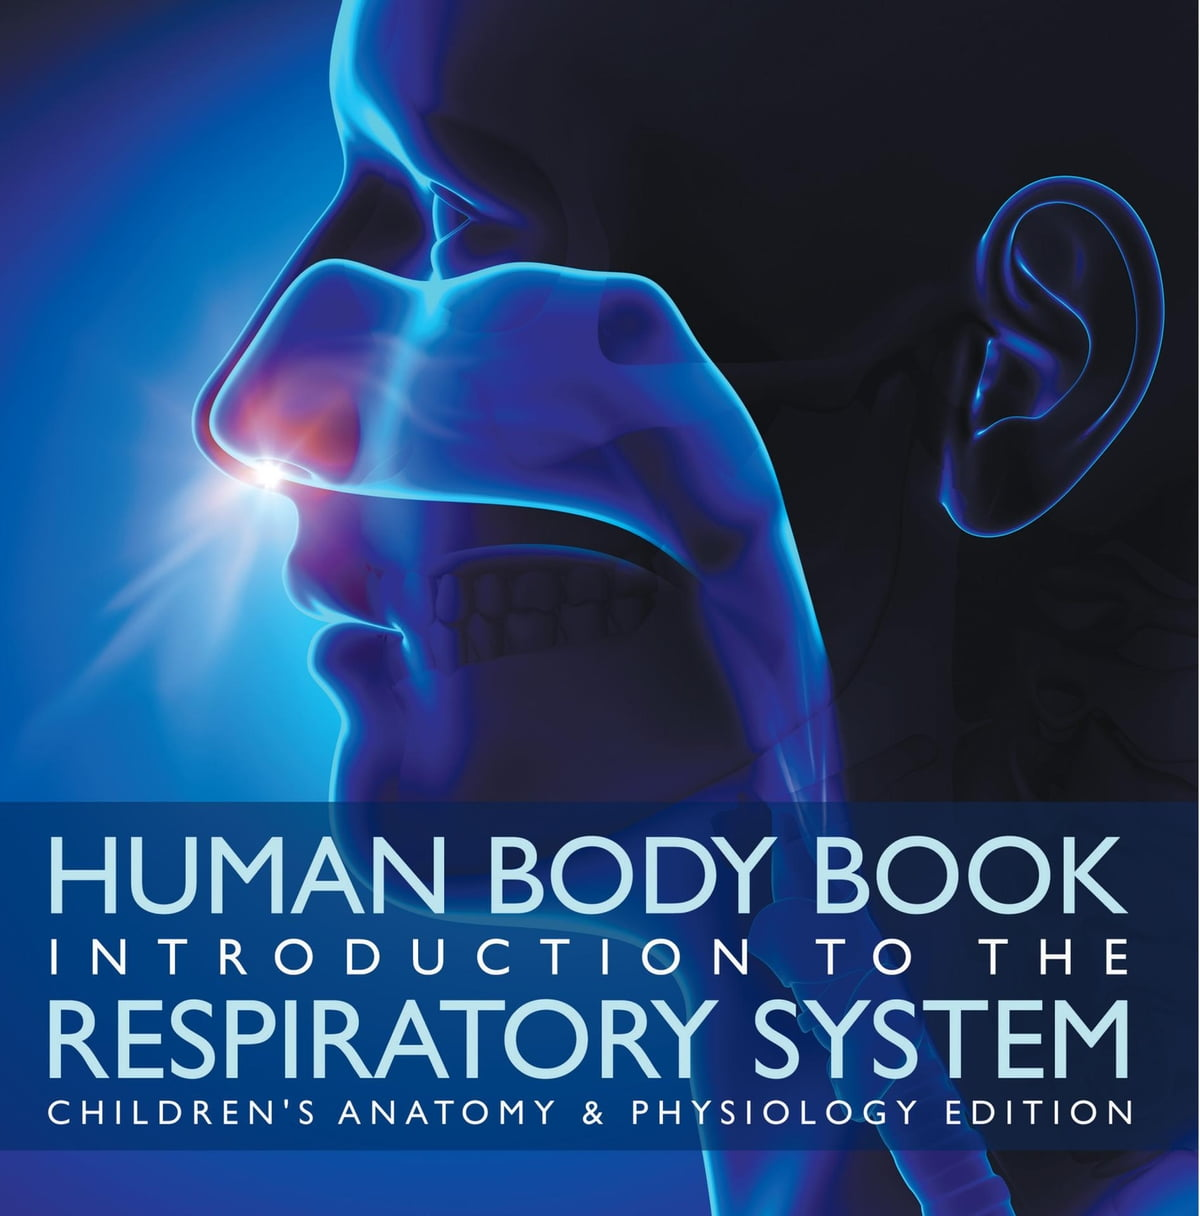 Human Body Book | Introduction to the Respiratory System ...